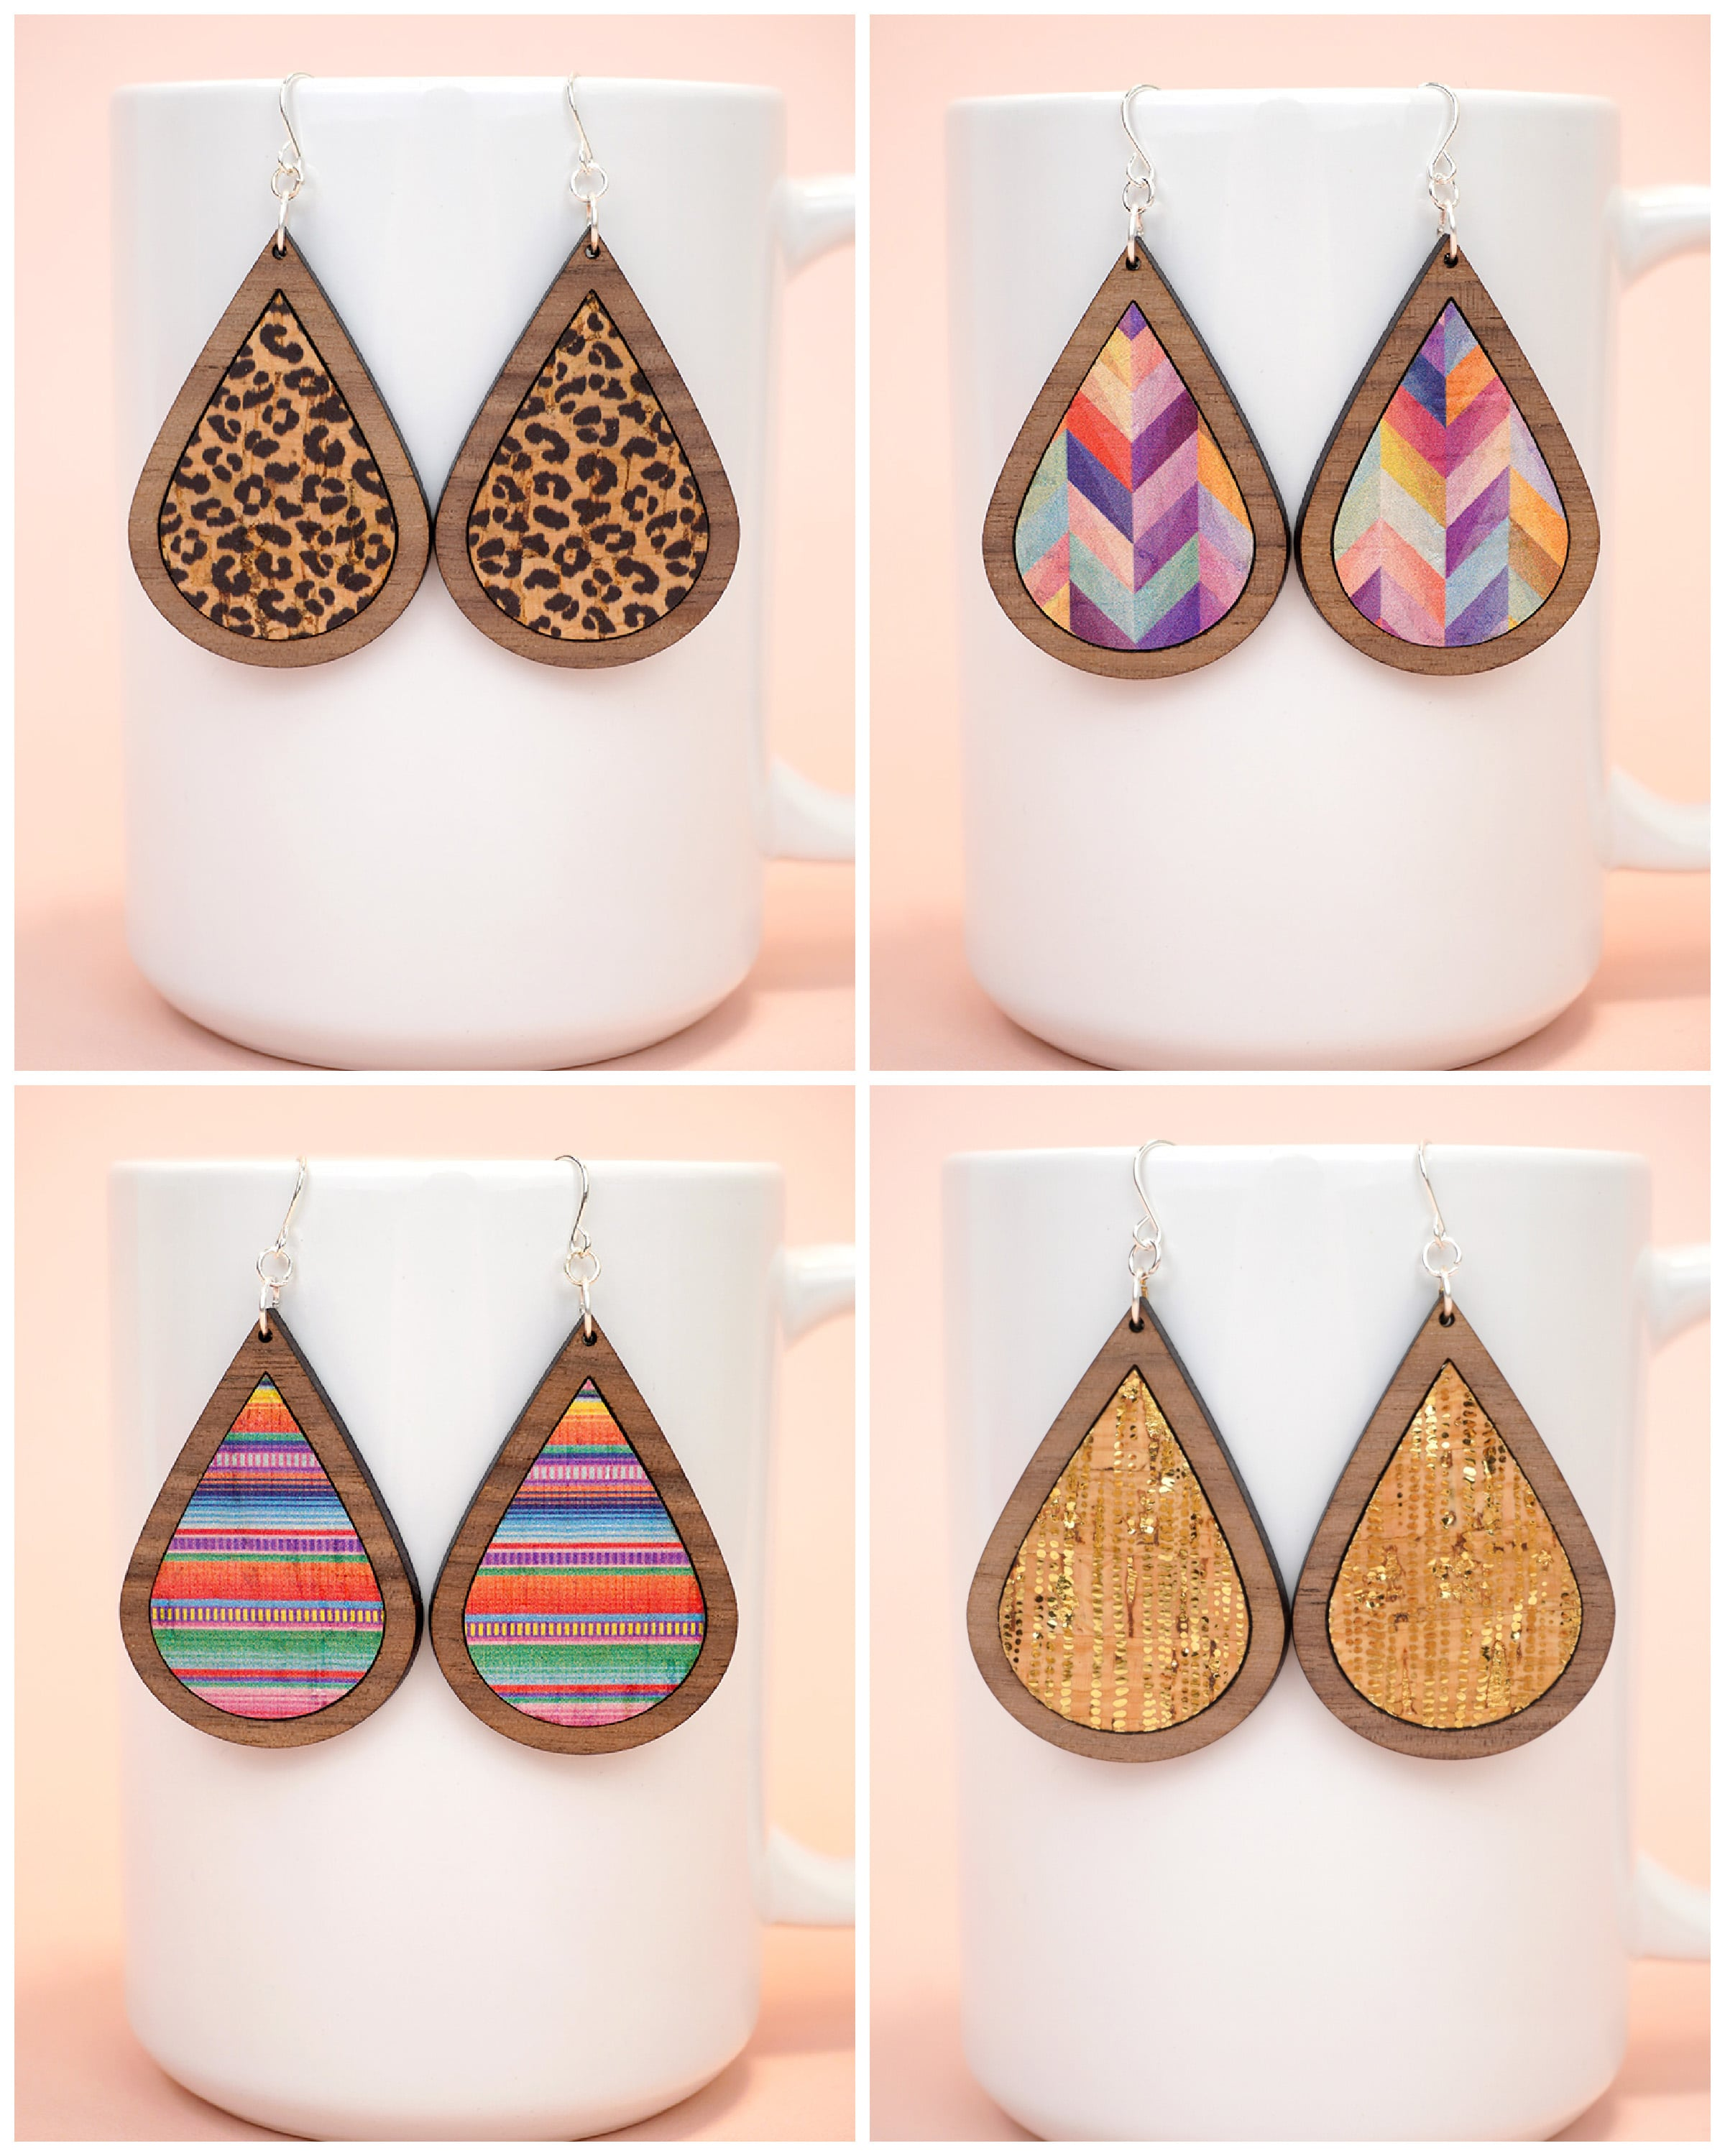 Collage of four styles of cork and laser cut wood earrings - leopard print, colorful herringbone, metallic gold, and colorful serape print.